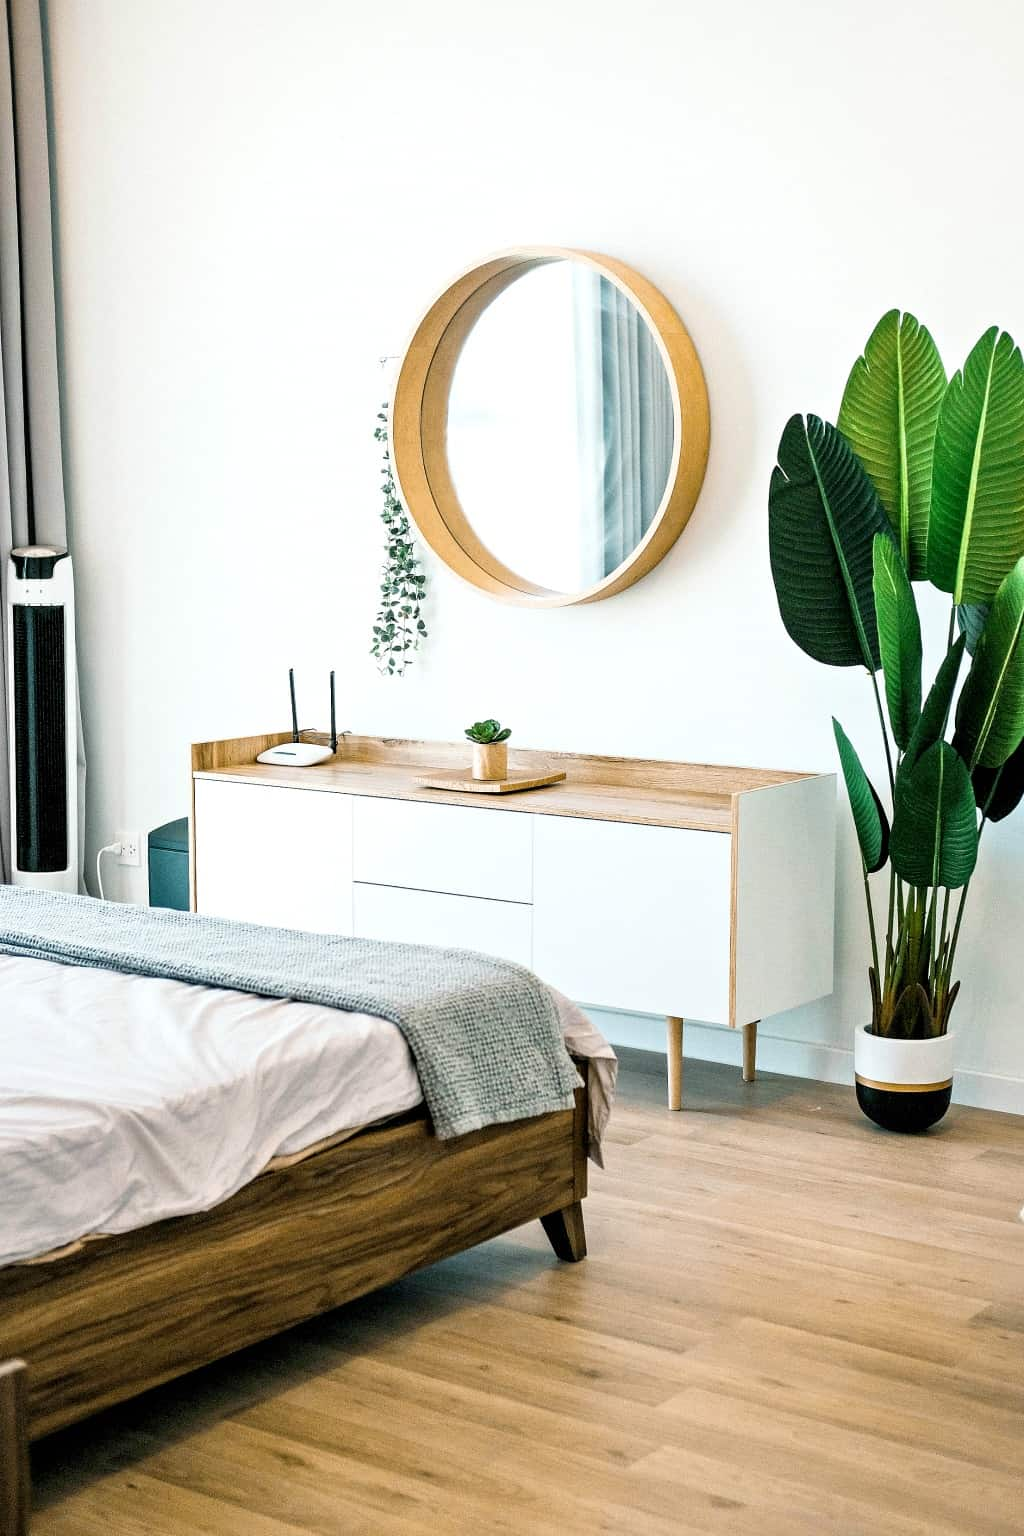 A decluttered bedroom with round mirror and plants